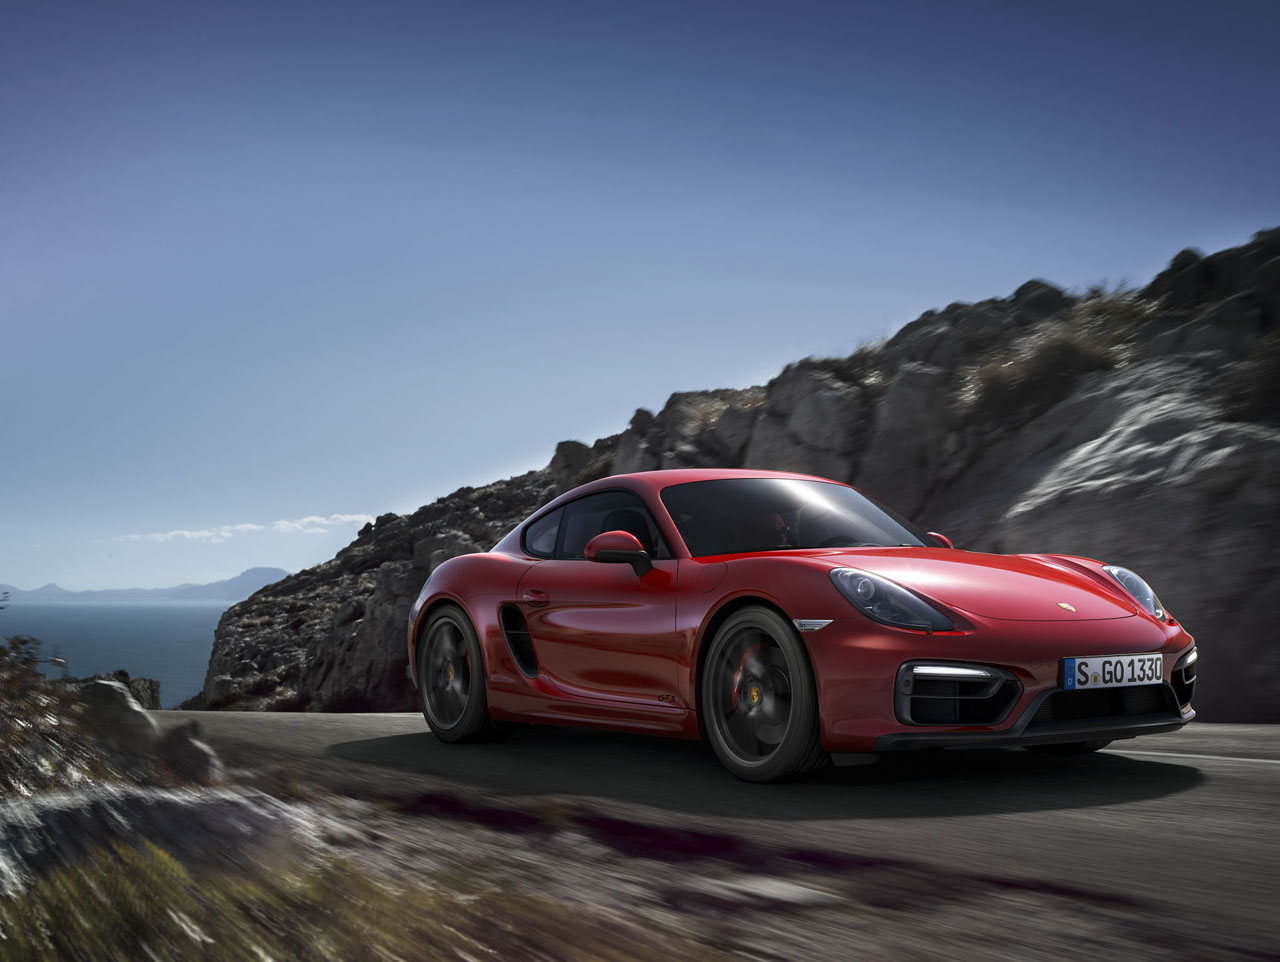 Porsche Shows New Boxster GTS And Cayman GTS CarCostCanada - Porsche cayman invoice price